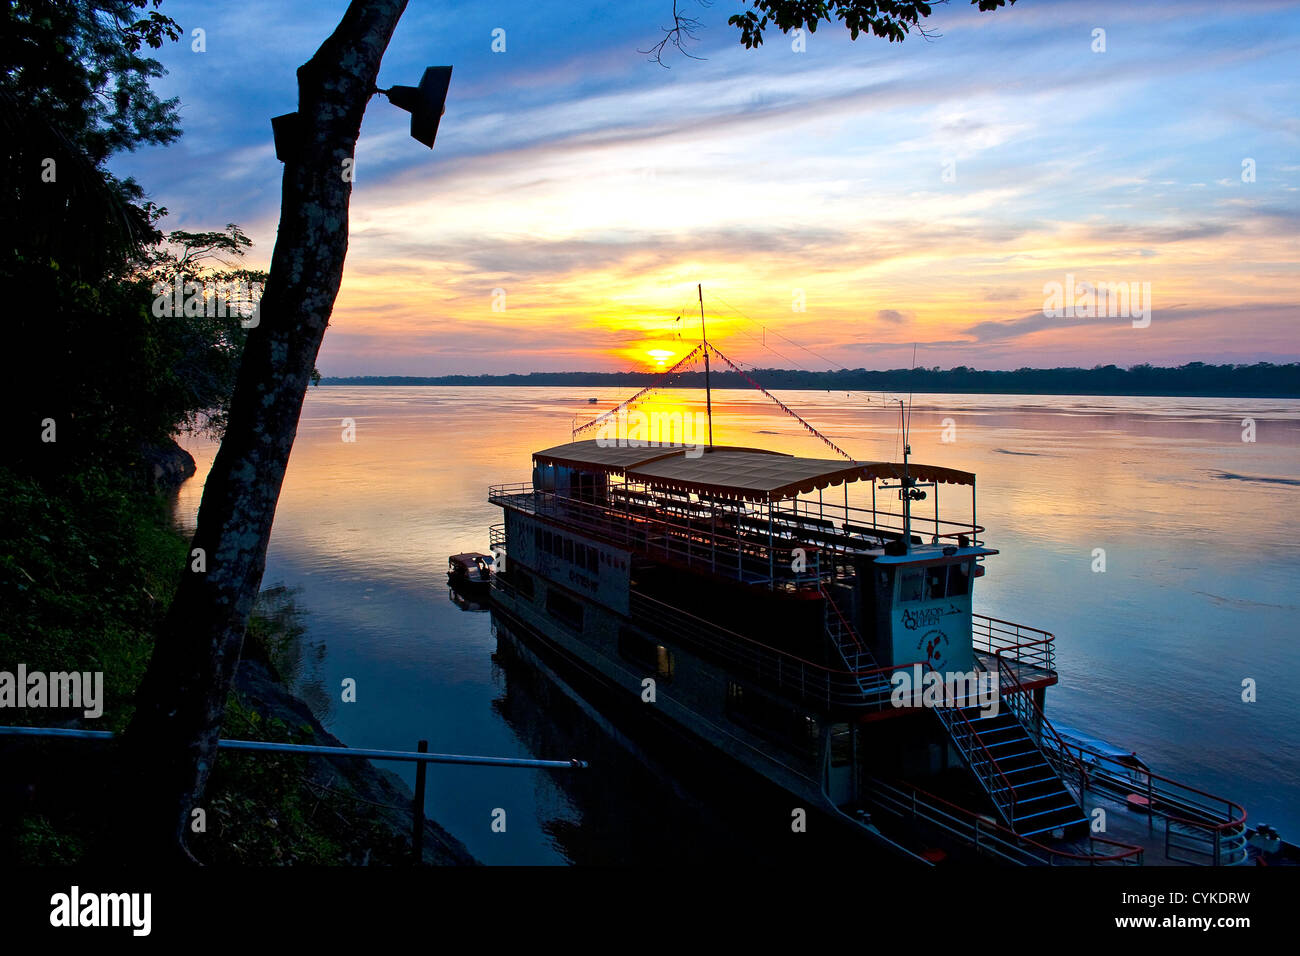 Sunset over the Amazon River and jungle and the River Boat, the Amazon Queen, docked in Peru or Brazil - Stock Image